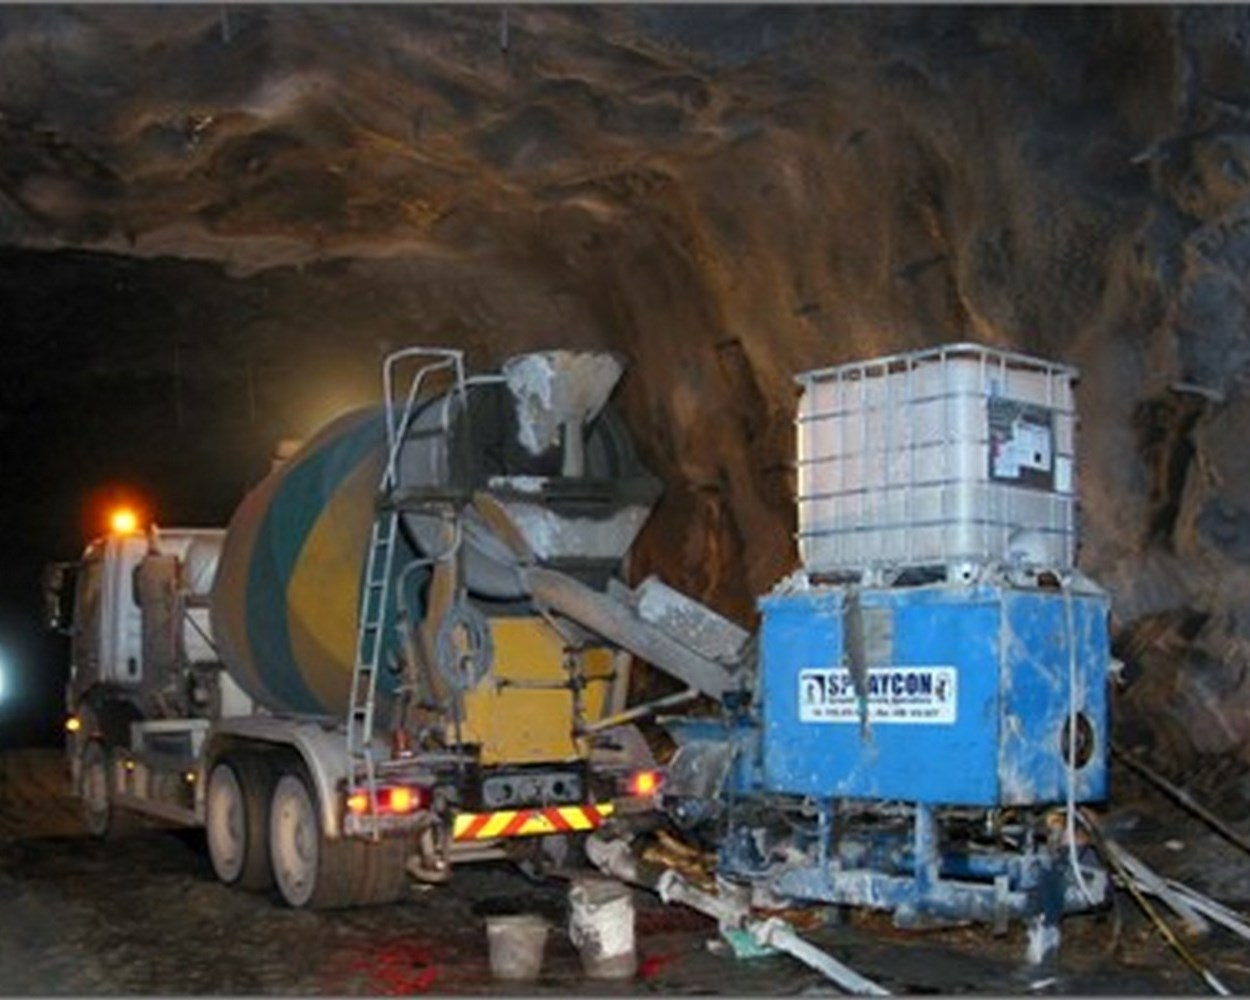 Cliffe Hill Quarry Tunnel Project